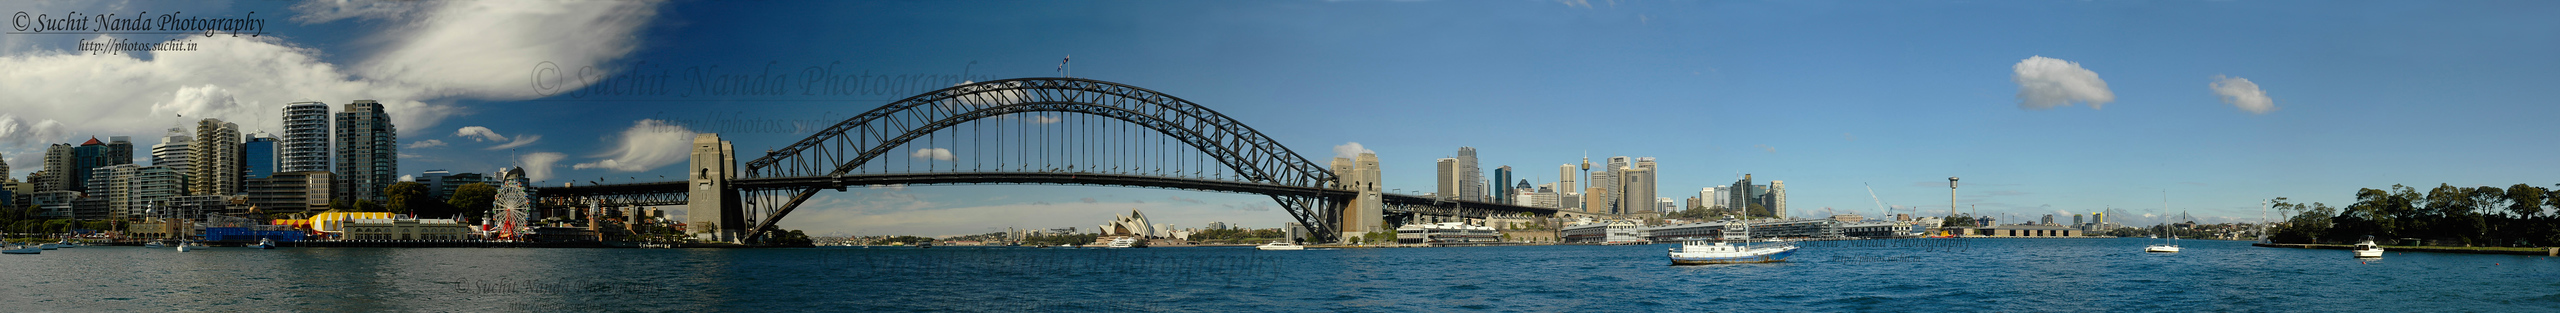 Panoramic image of the Sydney Harbour Bridge. This steel arch bridge across Sydney Harbour was formally opened in March 1932 and the bridge was the city's tallest structure until 1967. It carries rail, vehicular, and pedestrian traffic between the Sydney central business district (CBD) and the North Shore. From the bridge one gets a nice view of Sydney's Opera House.  According to Guinness World Records, it is the world's widest long-span bridge and its tallest steel arch bridge.   See large sized:  http://photos.suchit.in/photos/311127829_AU8cN-O.jpg